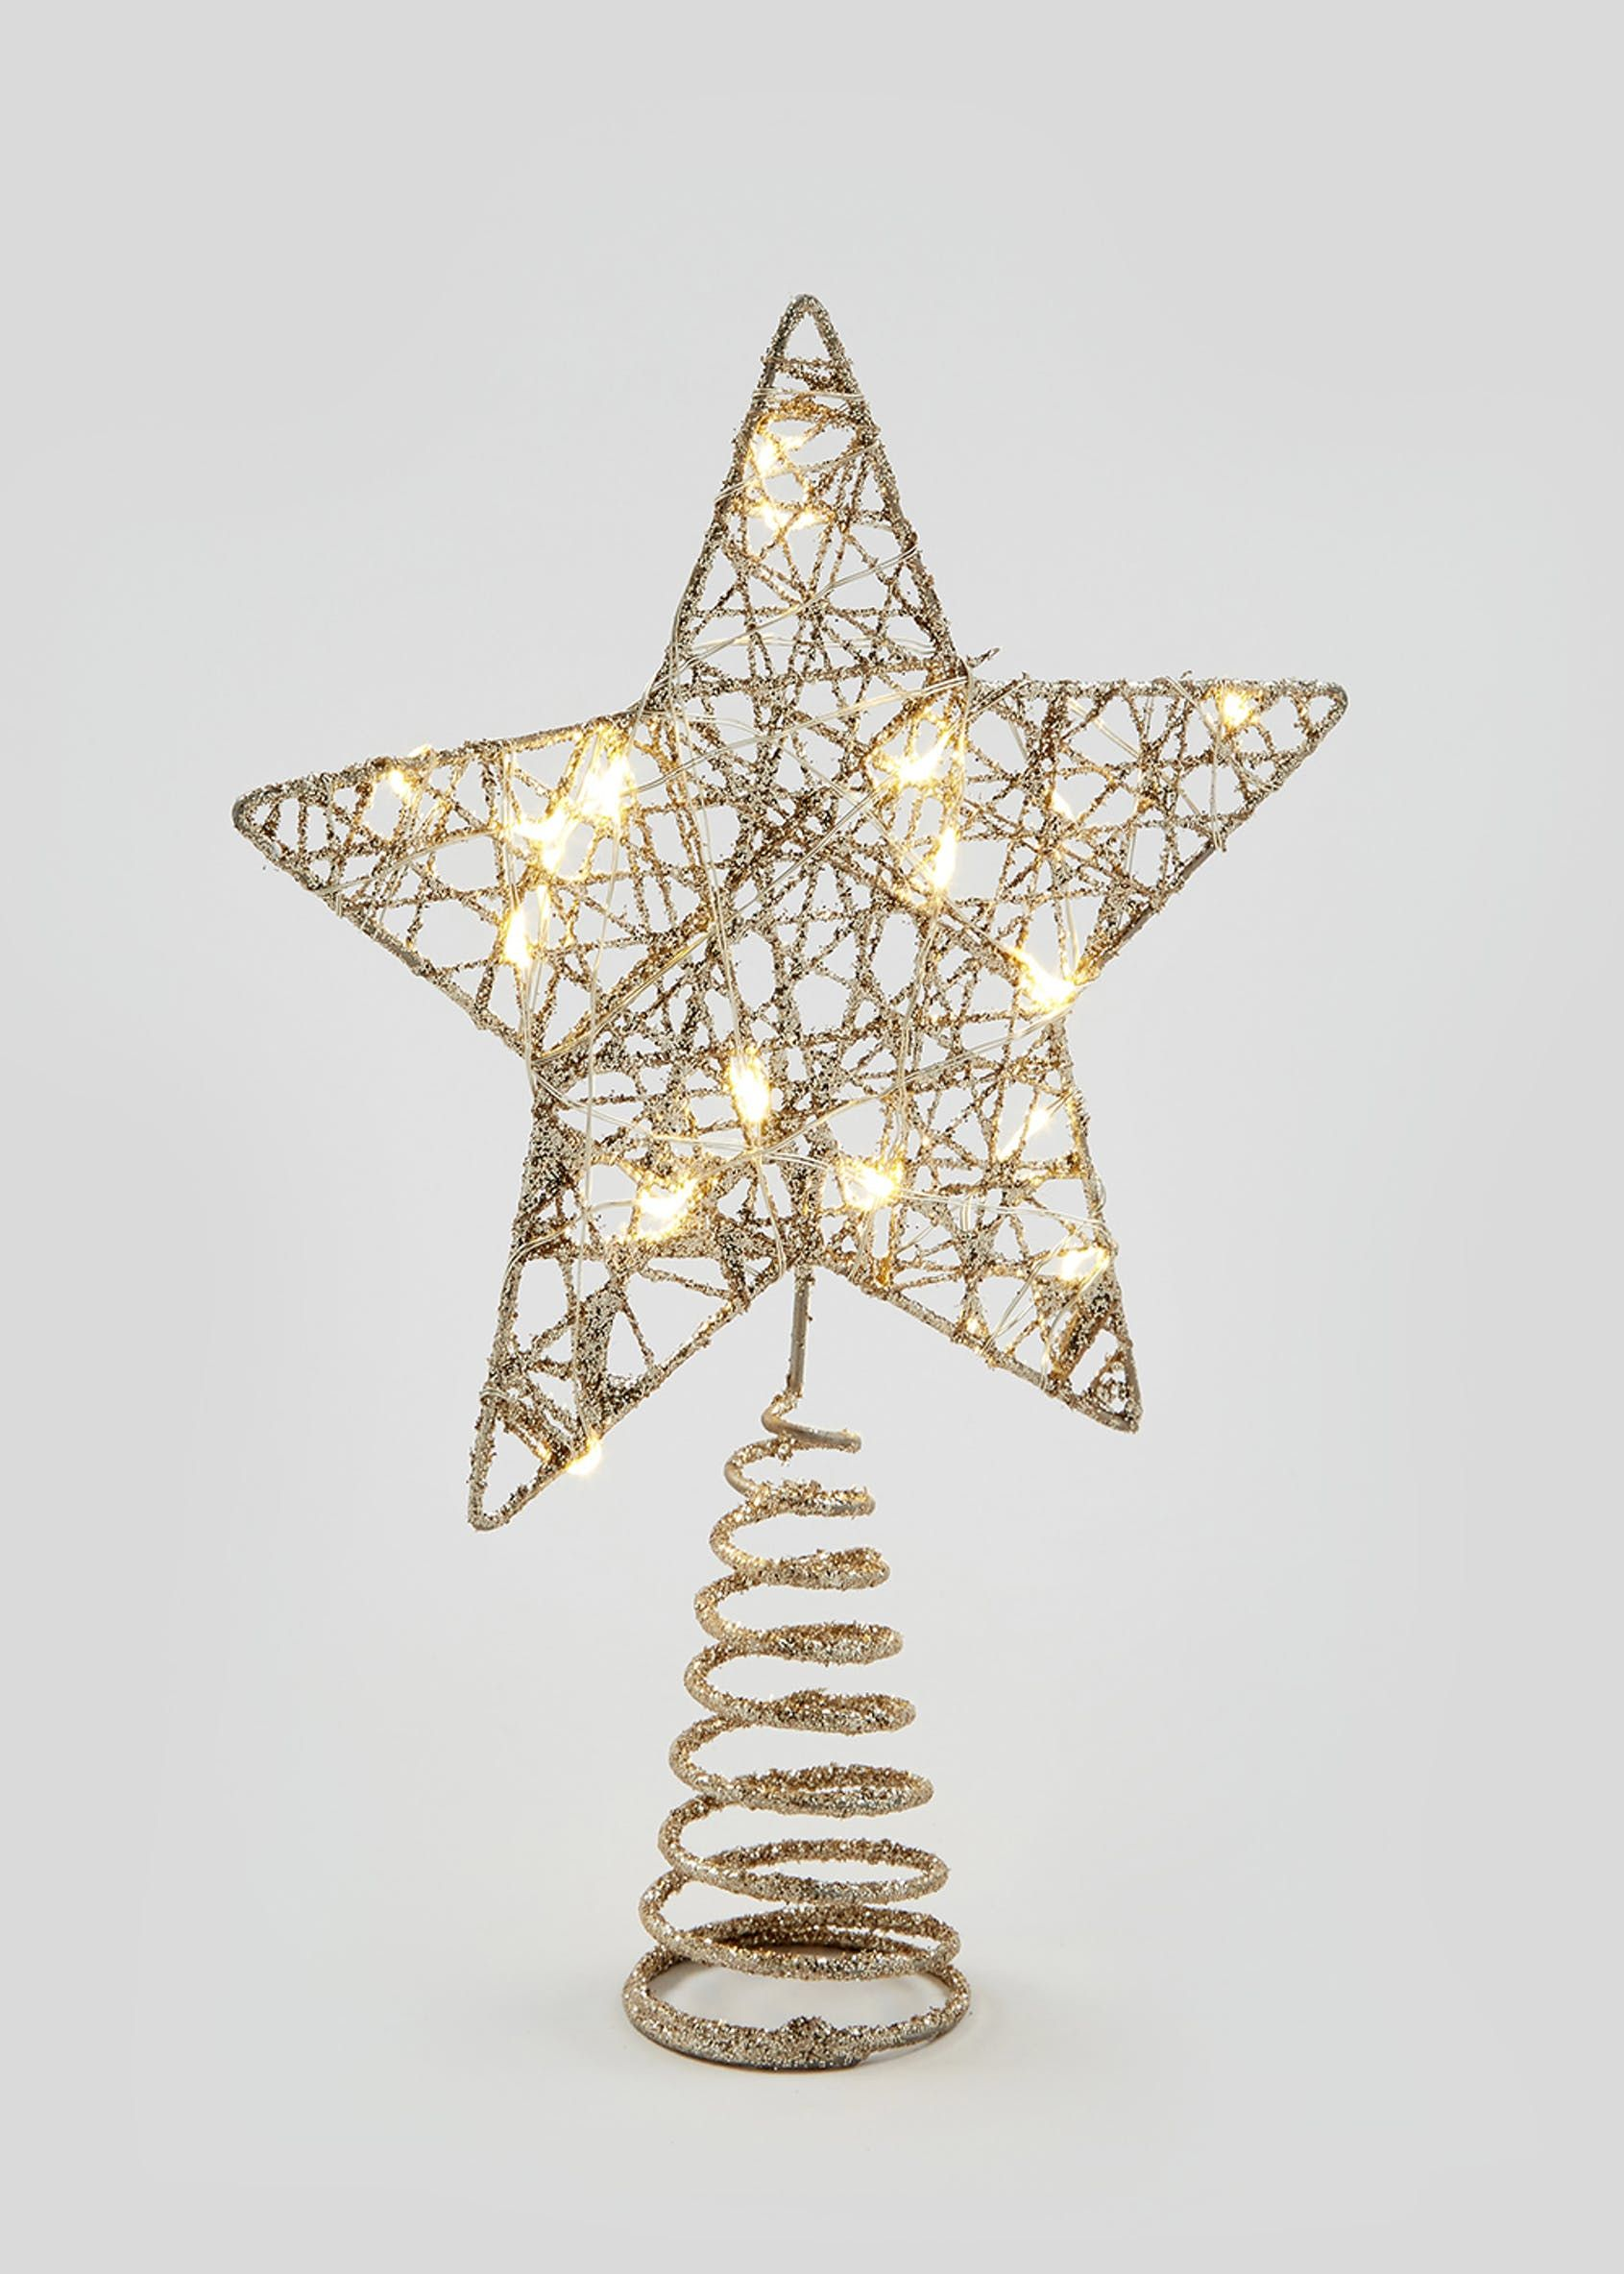 Led Star Tree Topper 26cm X 18cm X 5cm Gold Christmas Tree Star Topper Star Tree Topper Christmas Tree Toppers